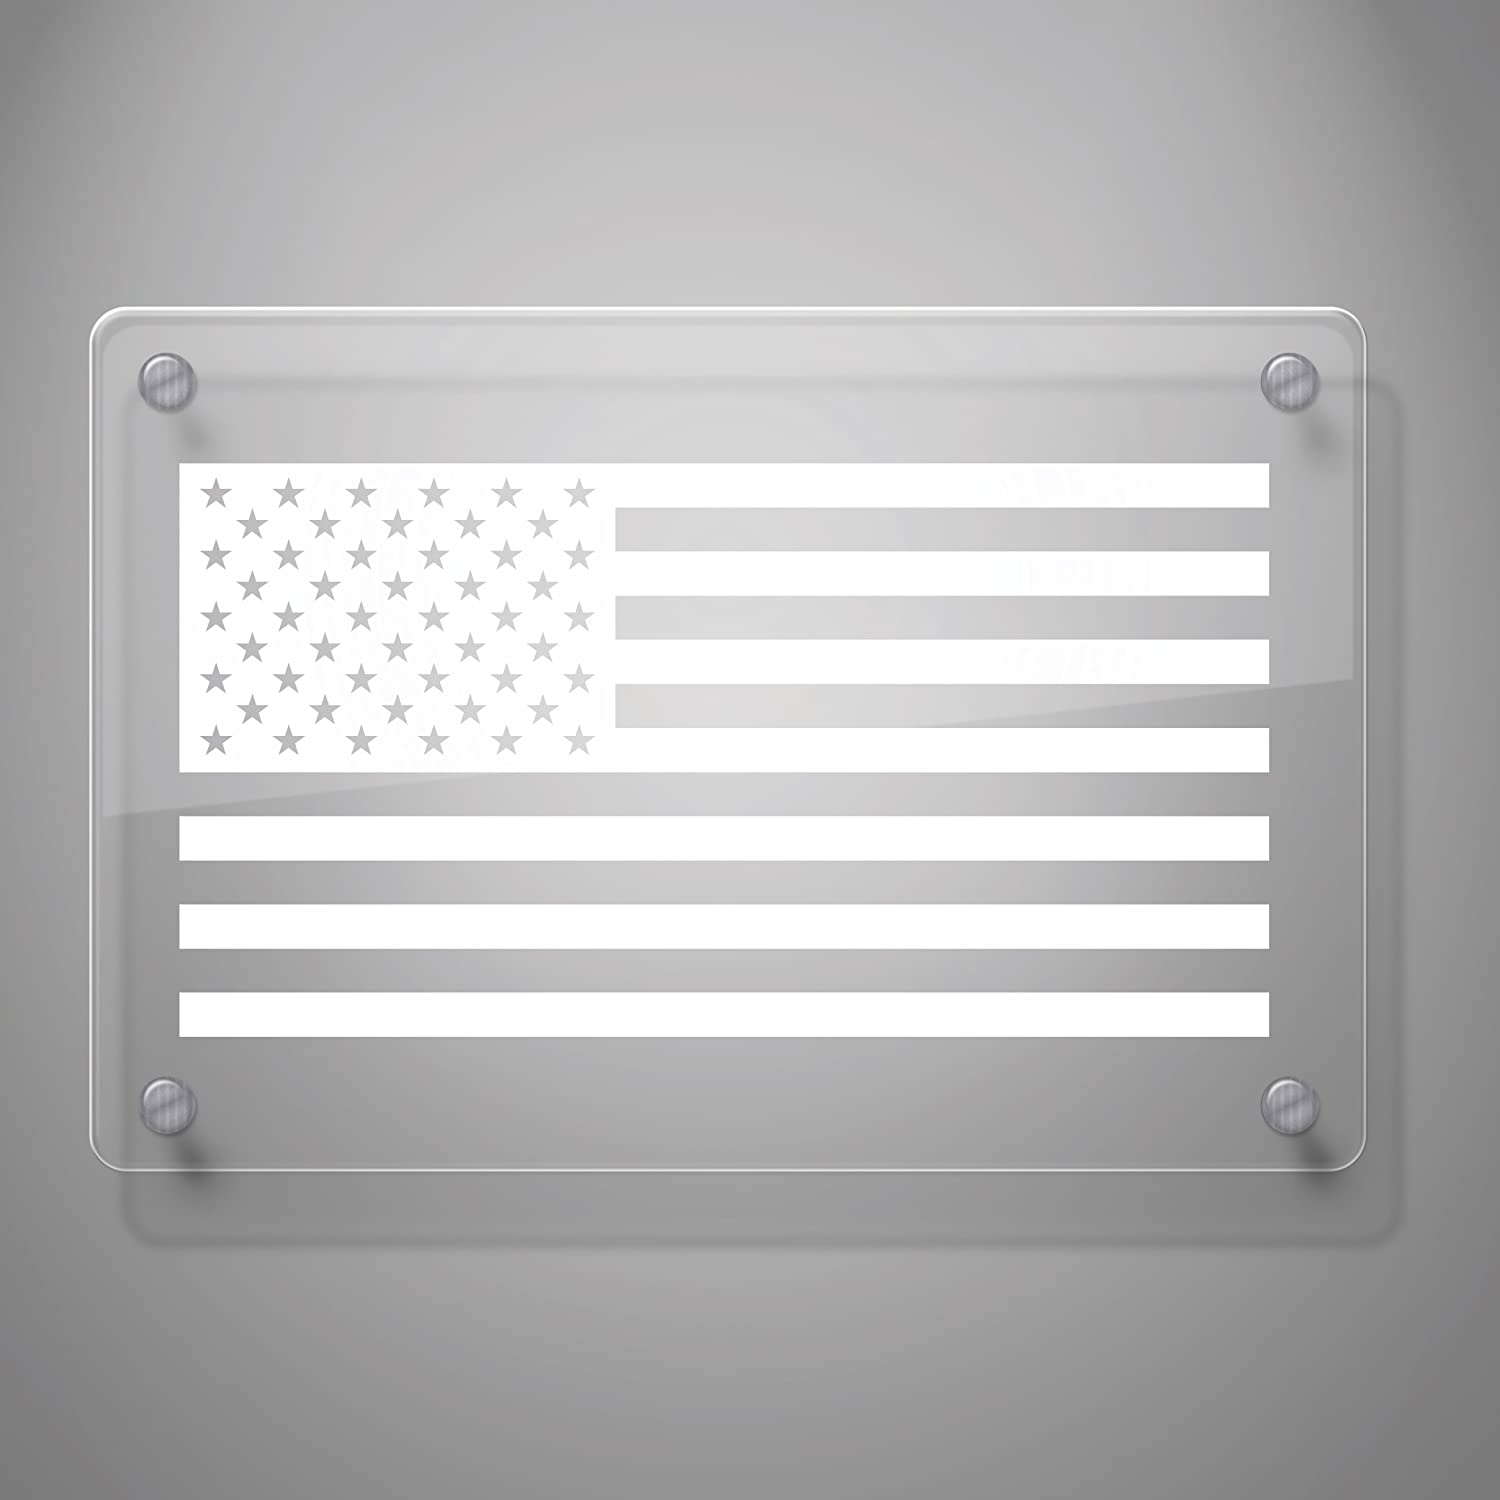 # 816 6 x 11.4, Black Walls Laptop Motorcycle 6 x 11.4 # 816 Mirror and More Mirror and More Yoonek Graphics American Flag United States Decal Sticker for Car Window